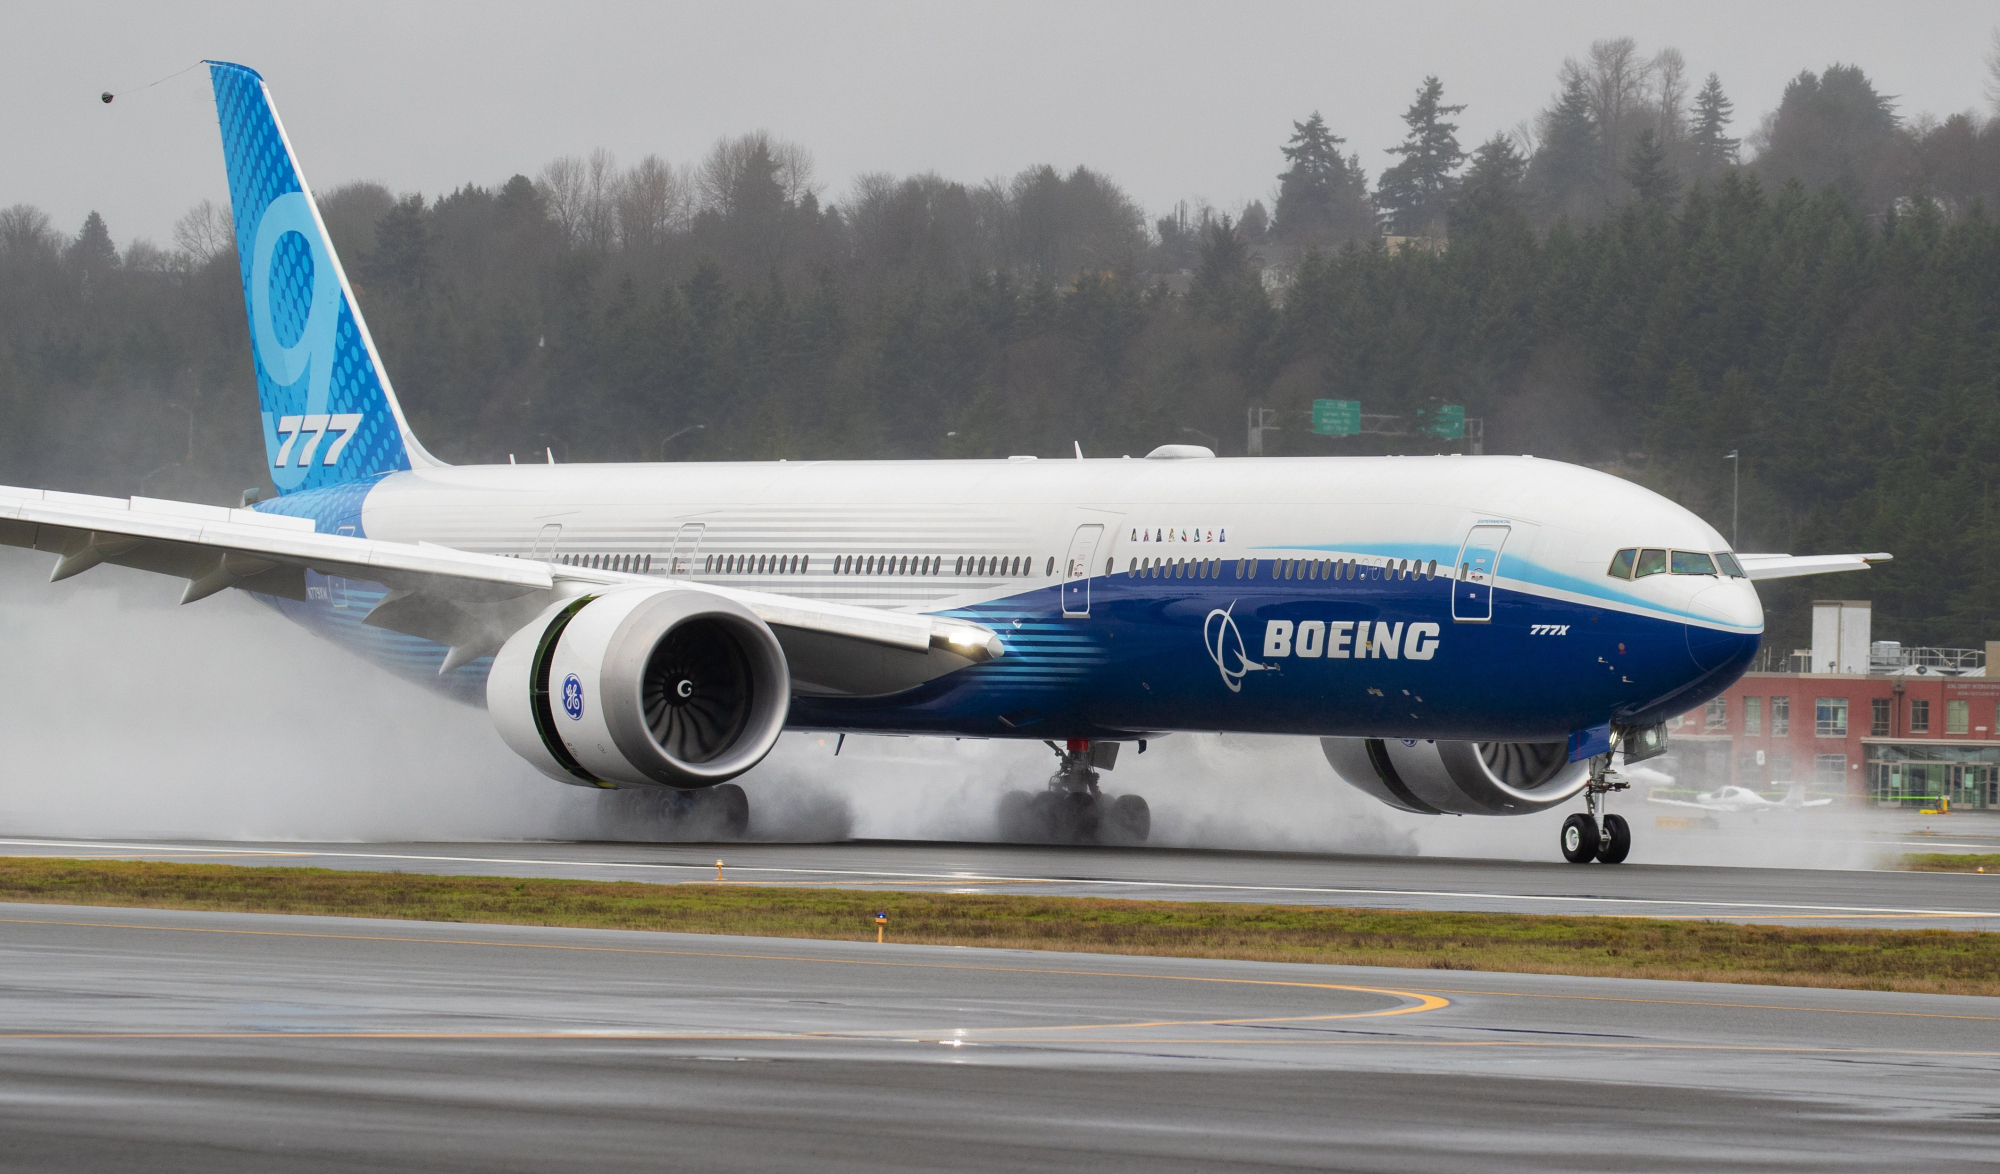 A Boeing 777X lands at Boeing Field in Seattle after its first flight on Saturday. | THE SEATTLE TIMES / VIA AP